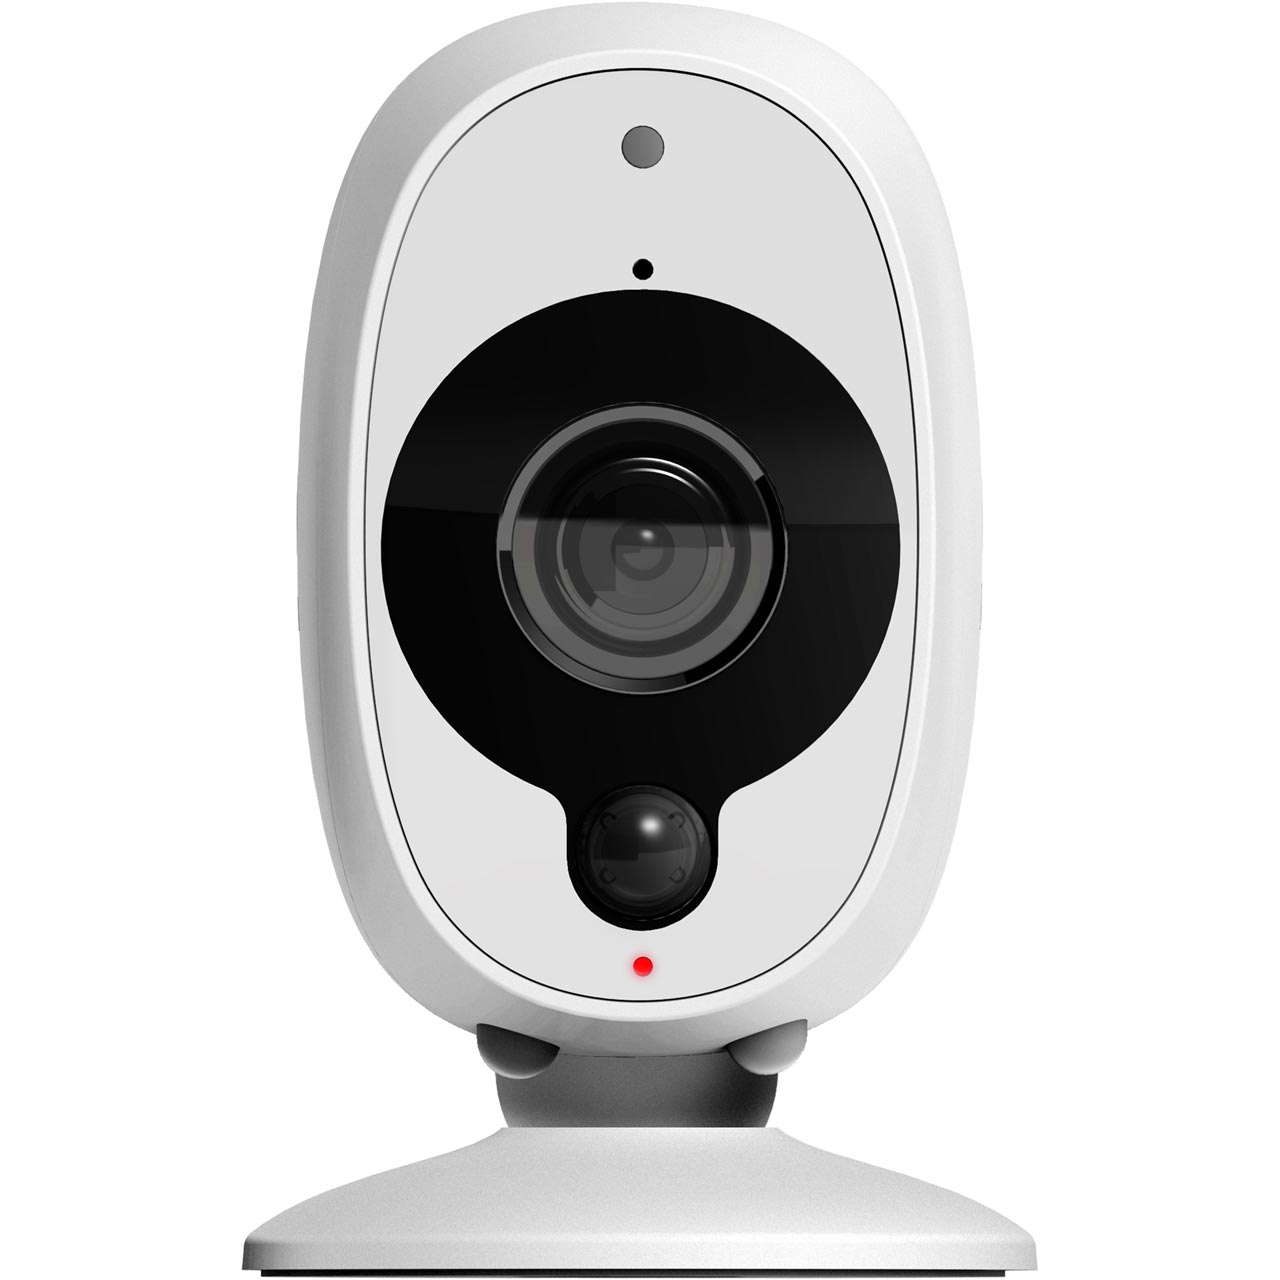 Swann Smart Security Camera - White